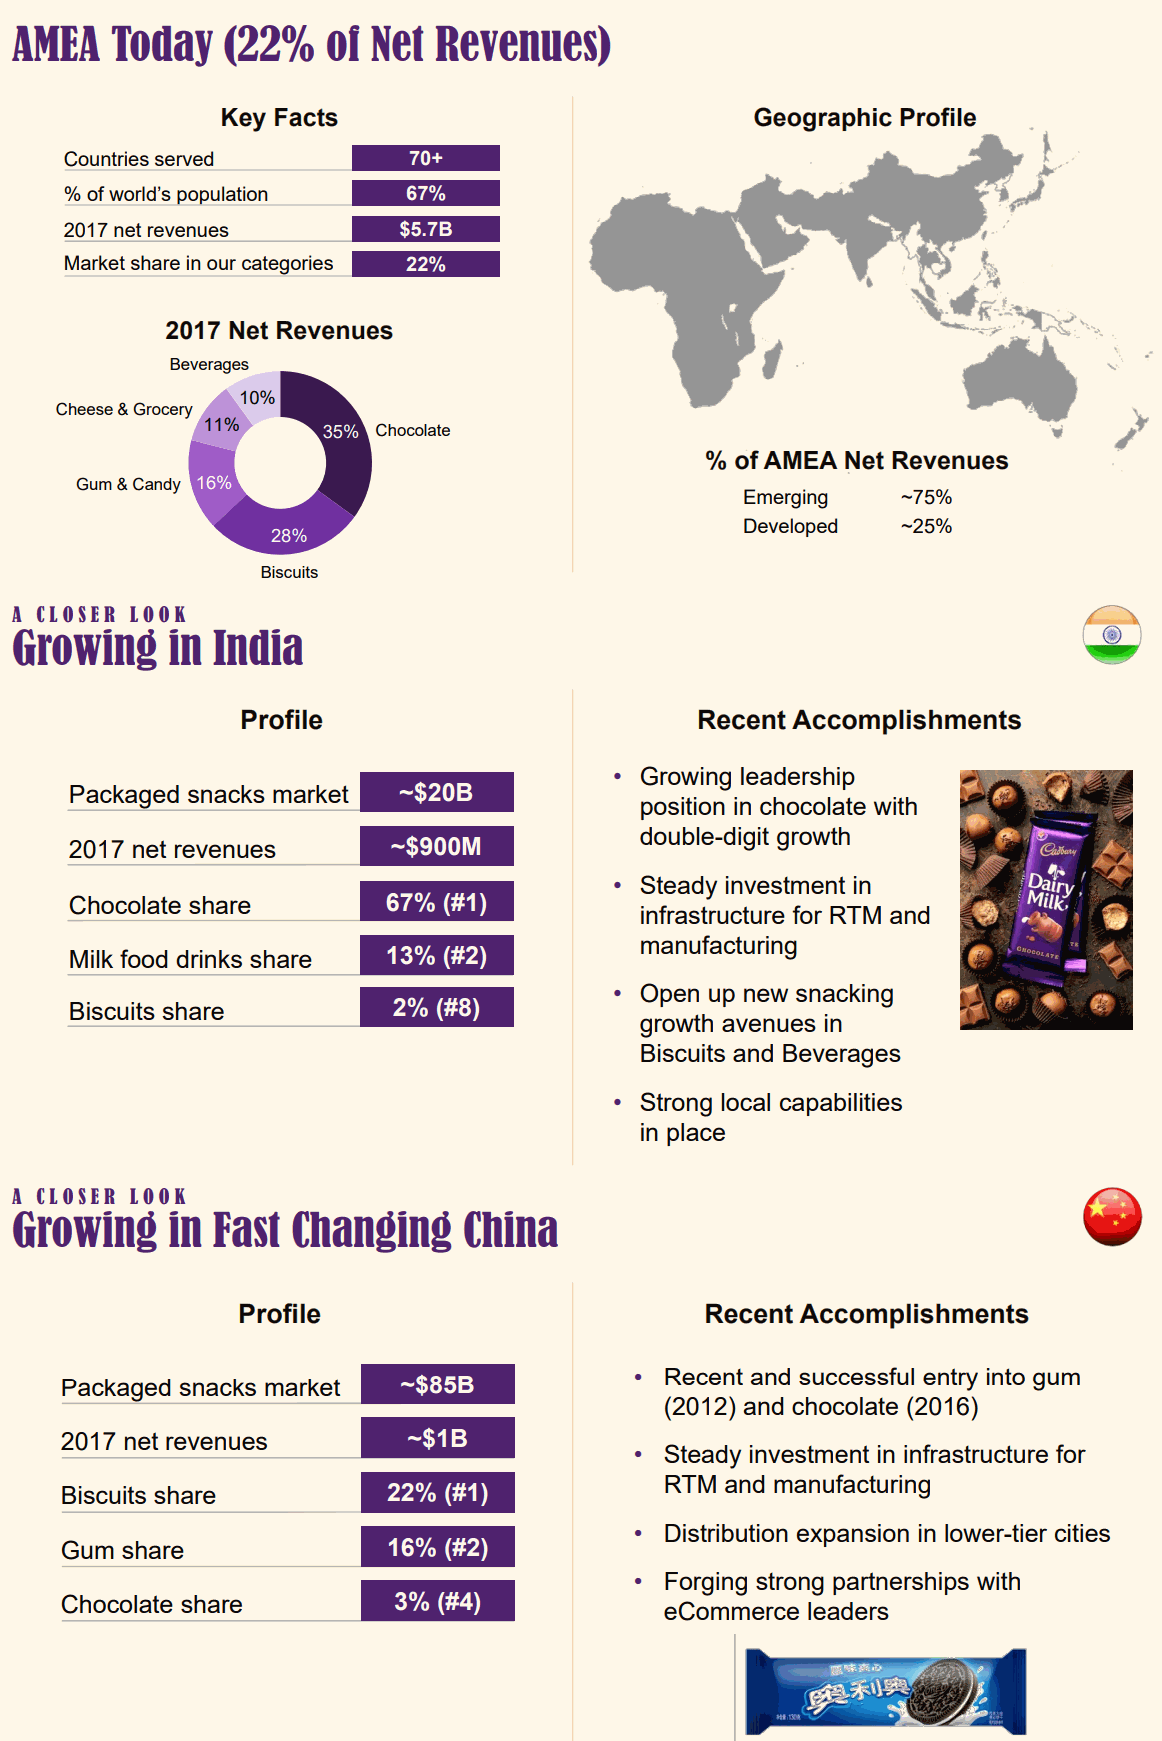 Mondelez-AMEA-China-India